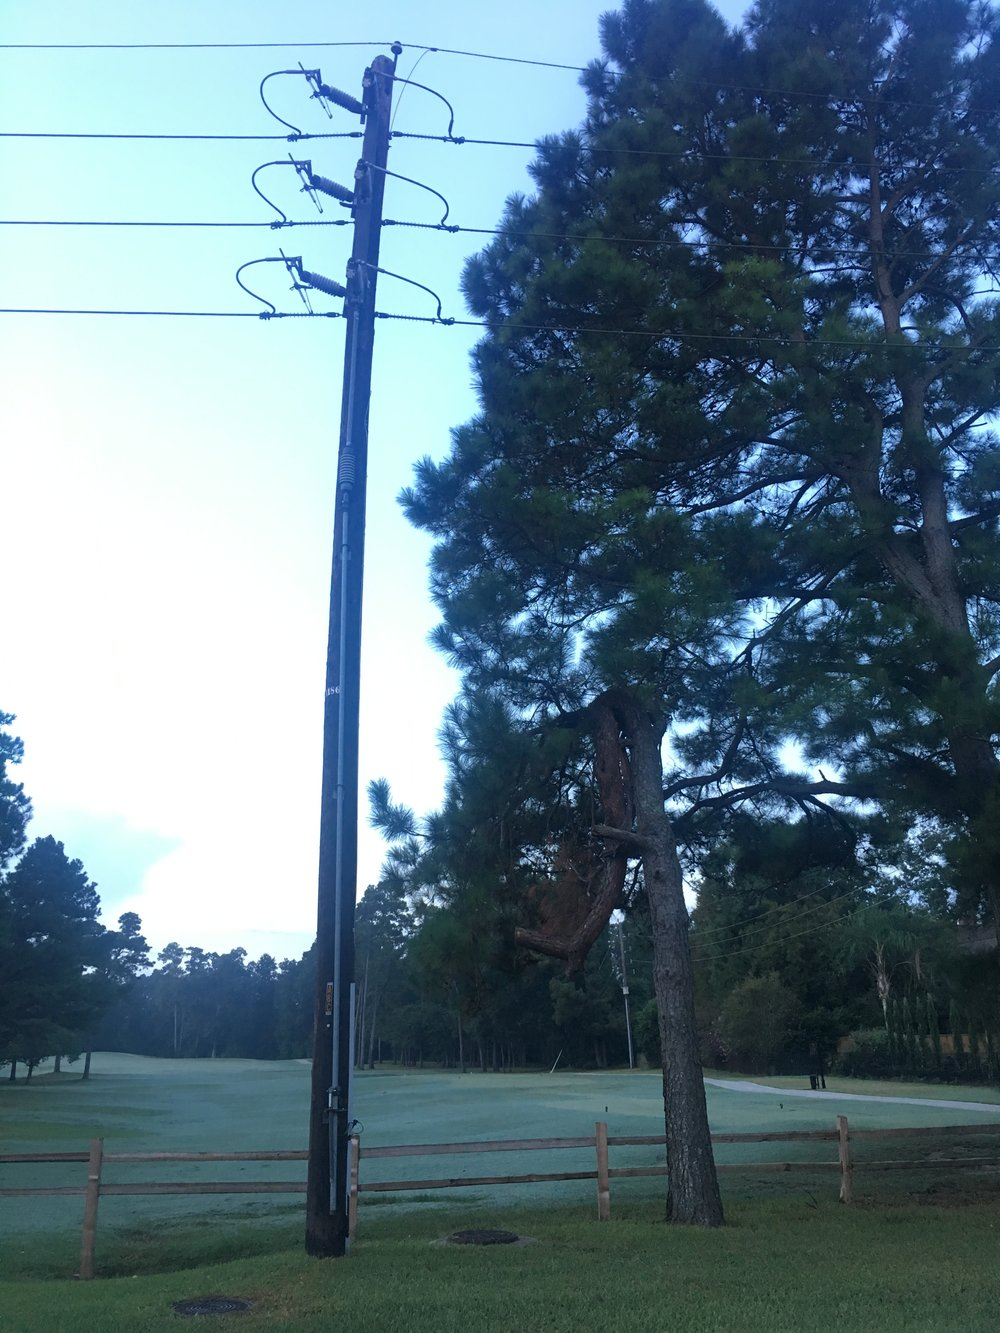 The telephone pole and tree - perfectly placed before we were born so that they would be exactly where we needed them to save our lives. Thank you Father for your provision and mercy.